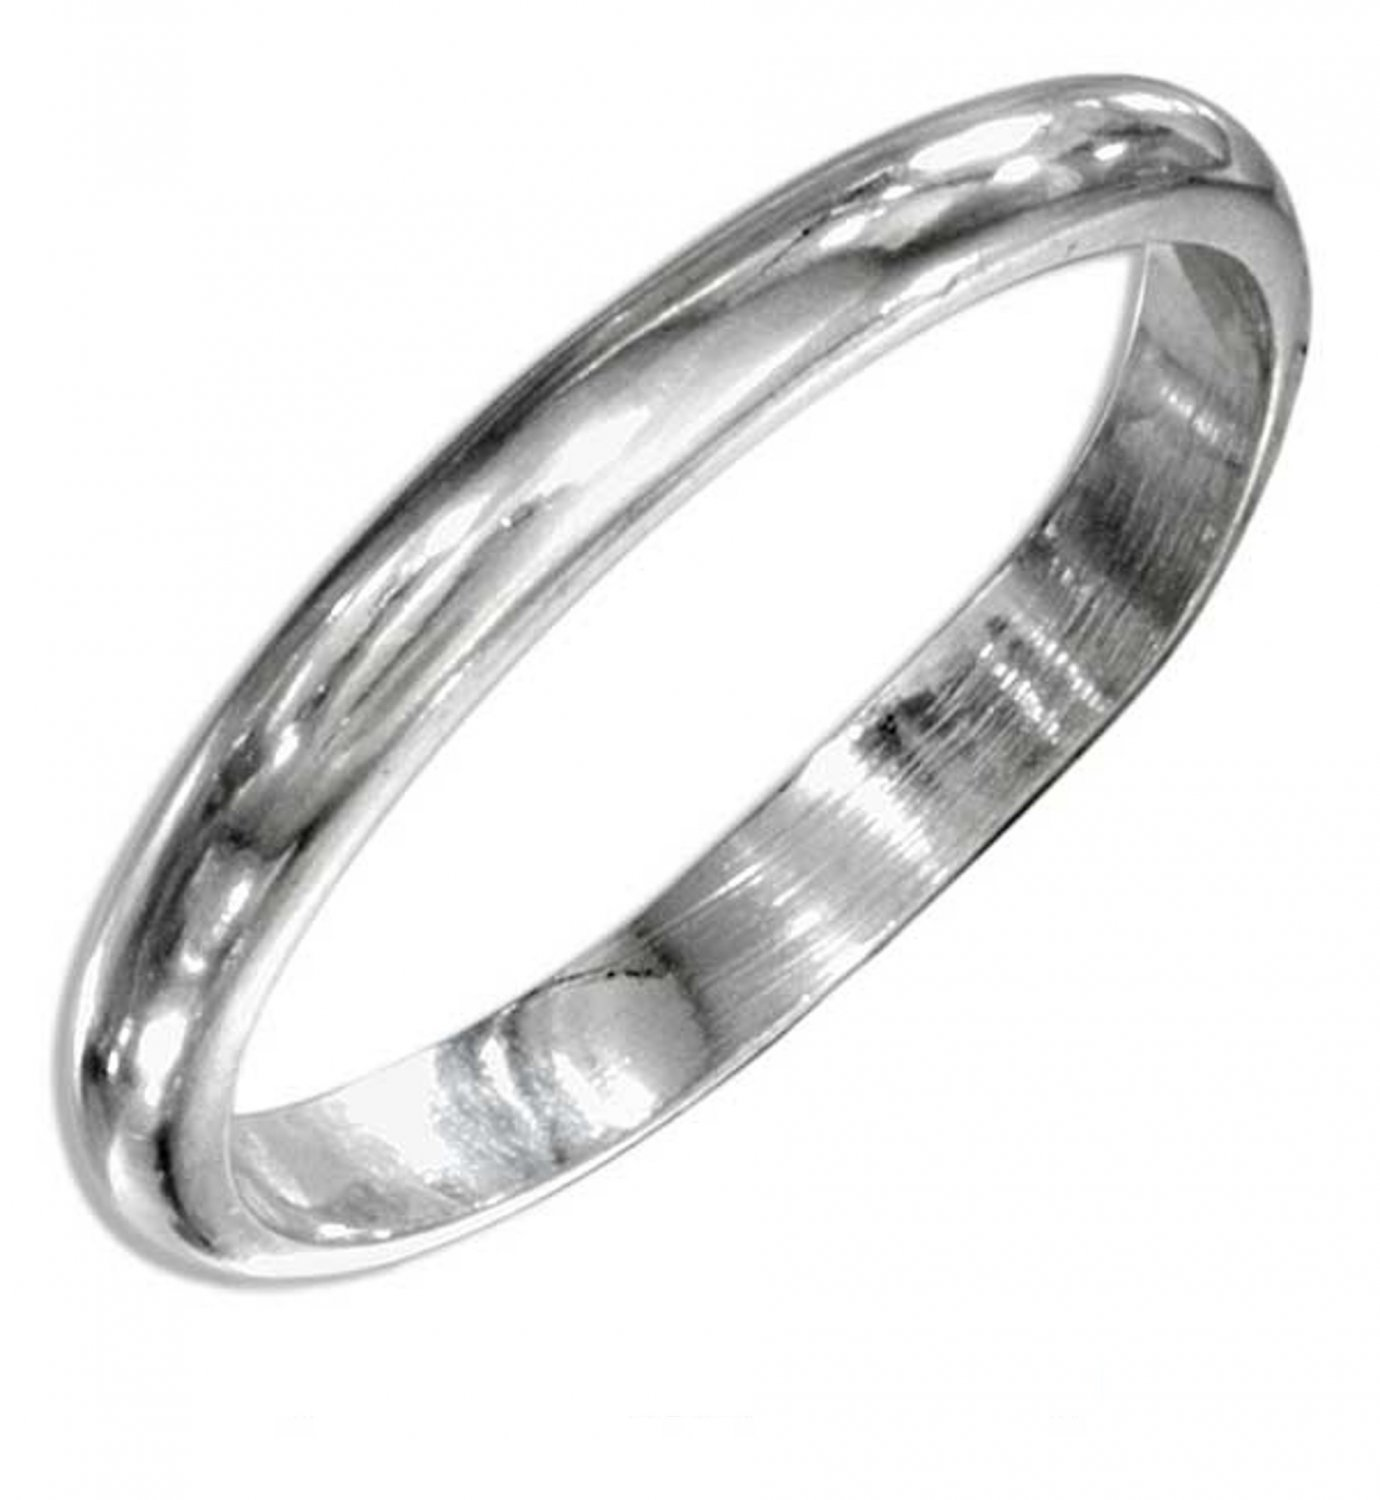 Classic and affordable Sterling Silver Wedding Band Size 8